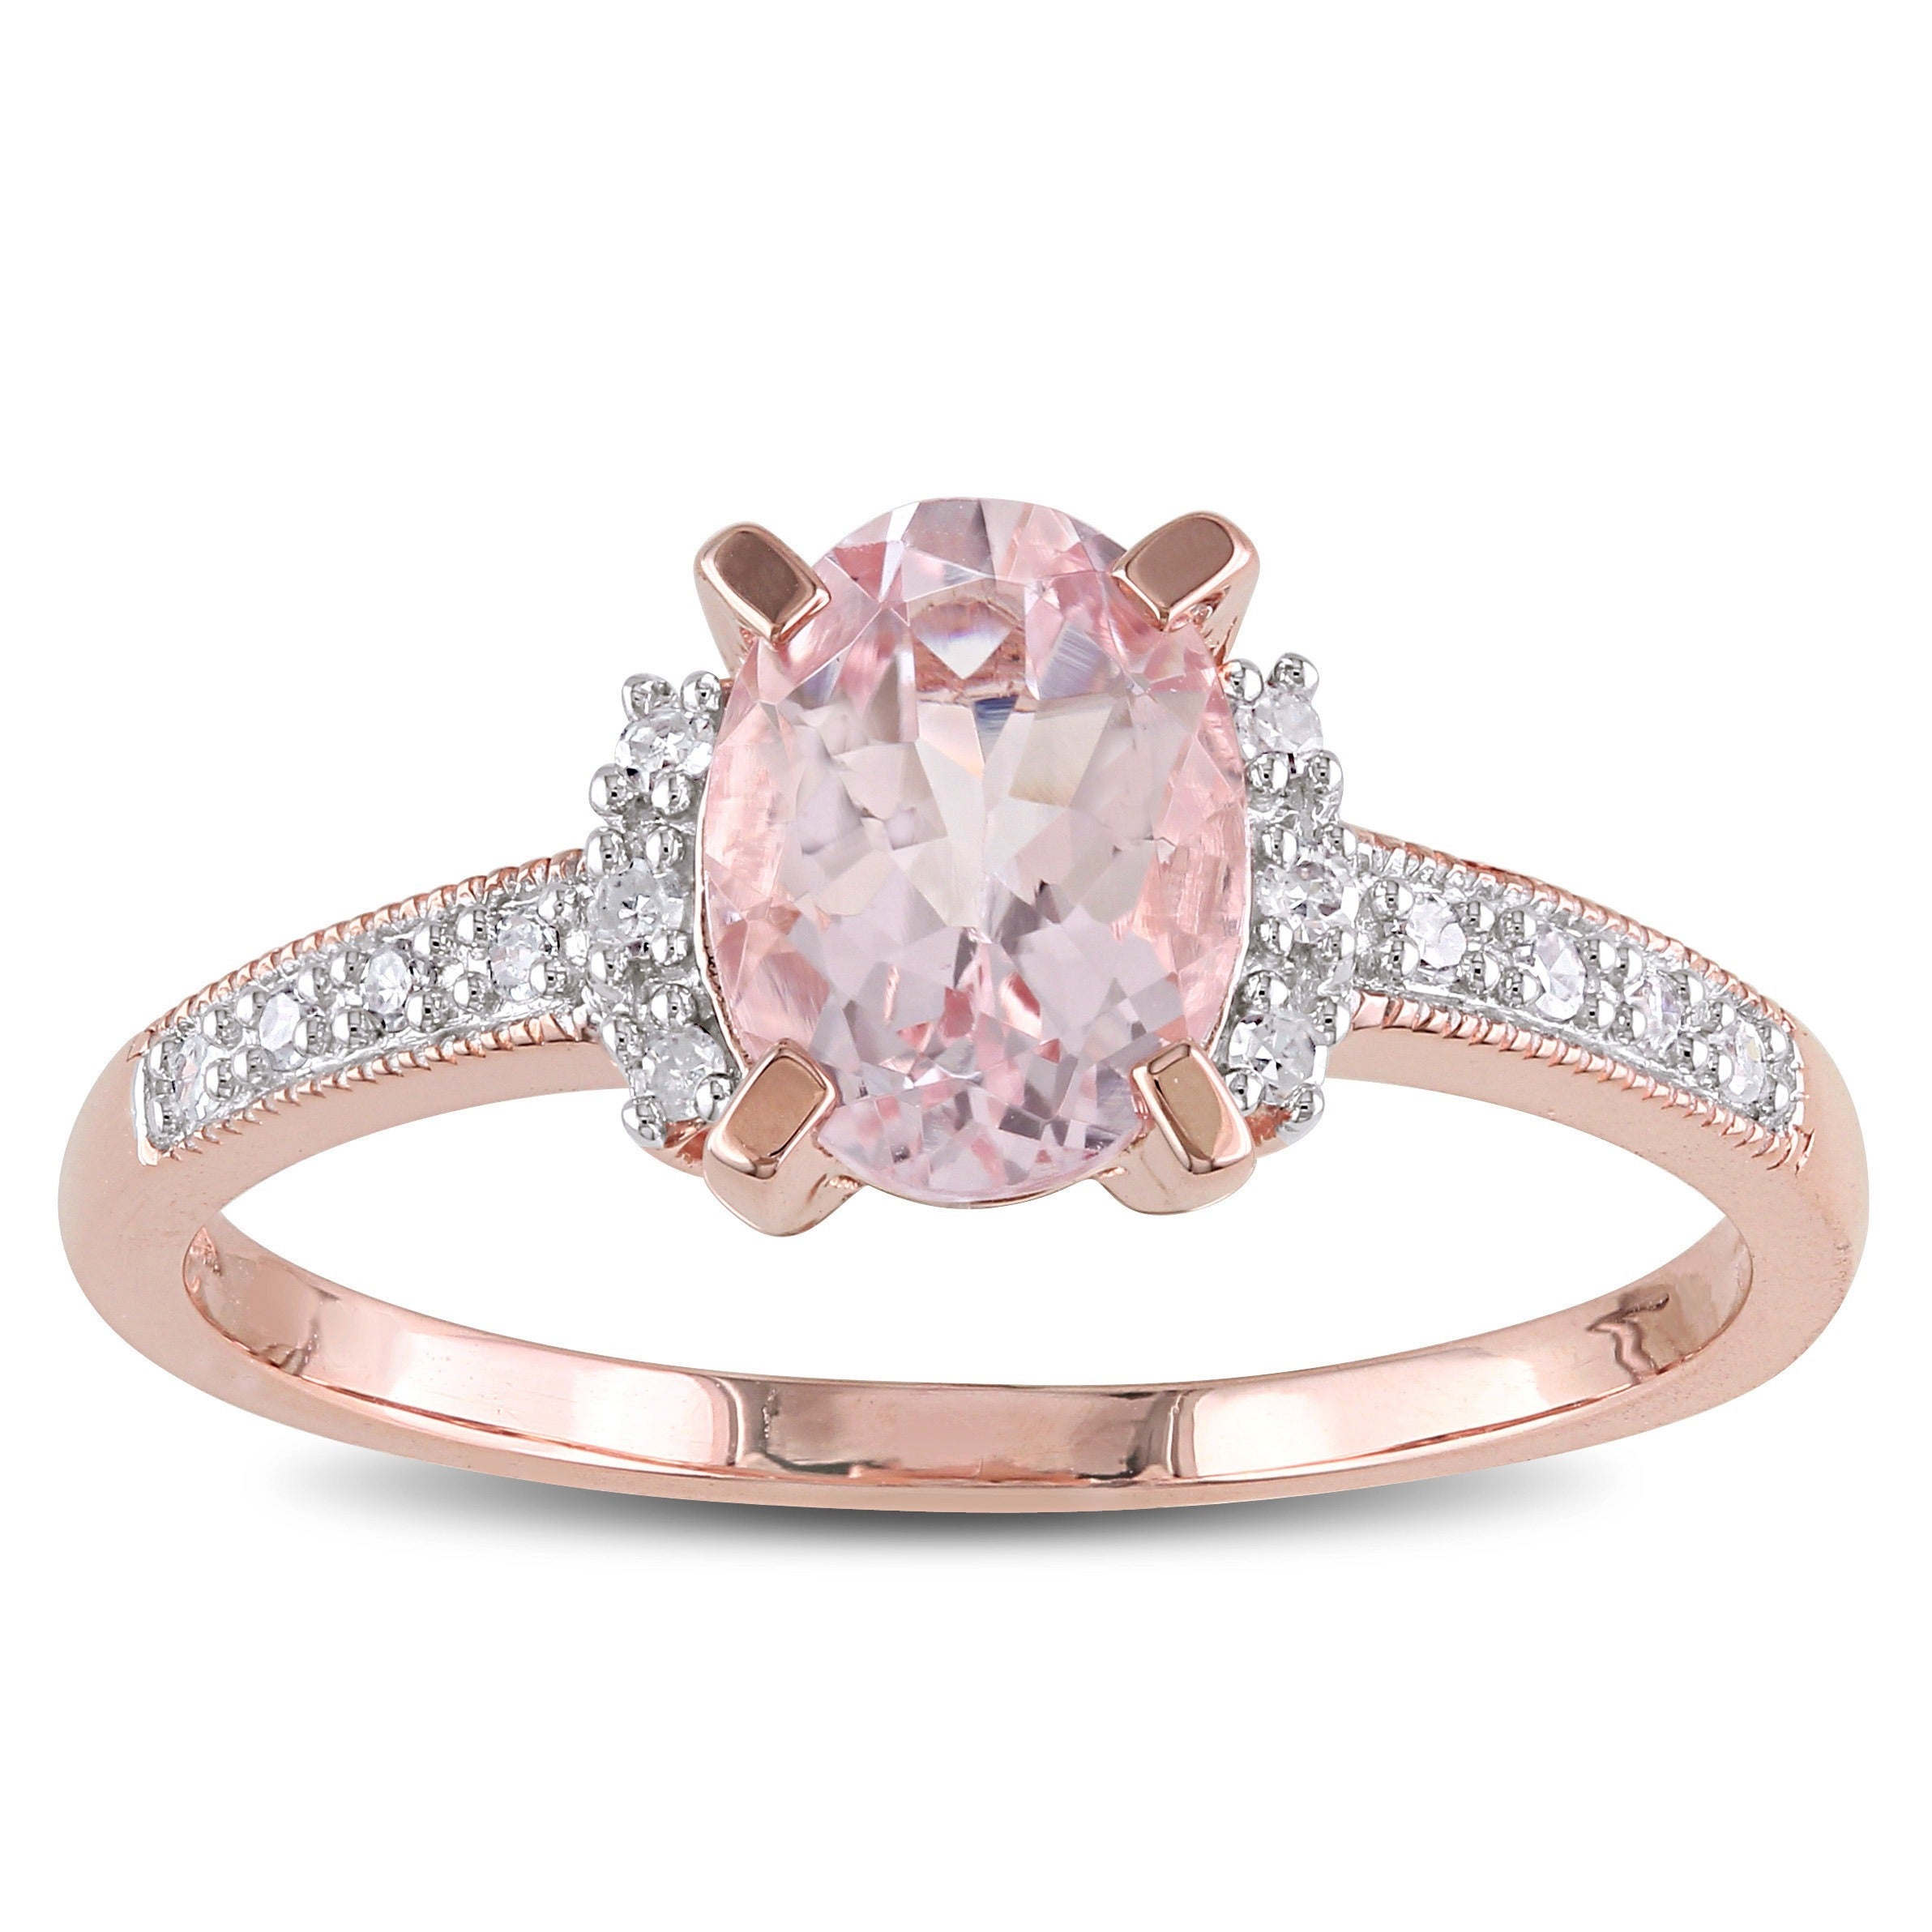 rose gioelli tiara shipping overstock ring pink collection today watches rings product jewelry simulated morganite wedding free silver crown goldplated quartz